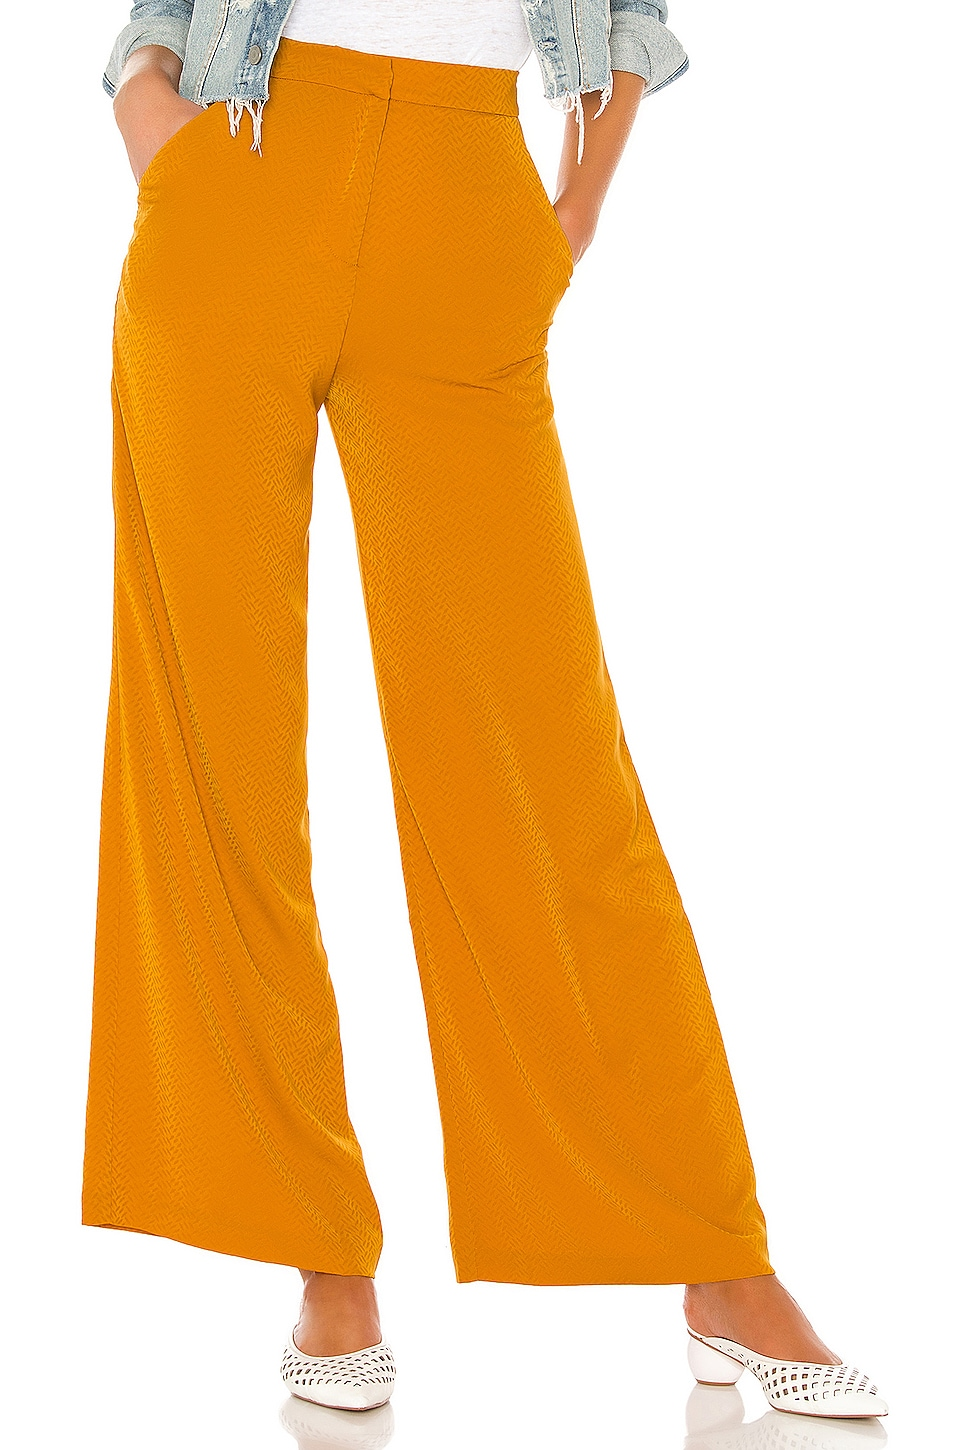 House of Harlow 1960 PANTALON MONA